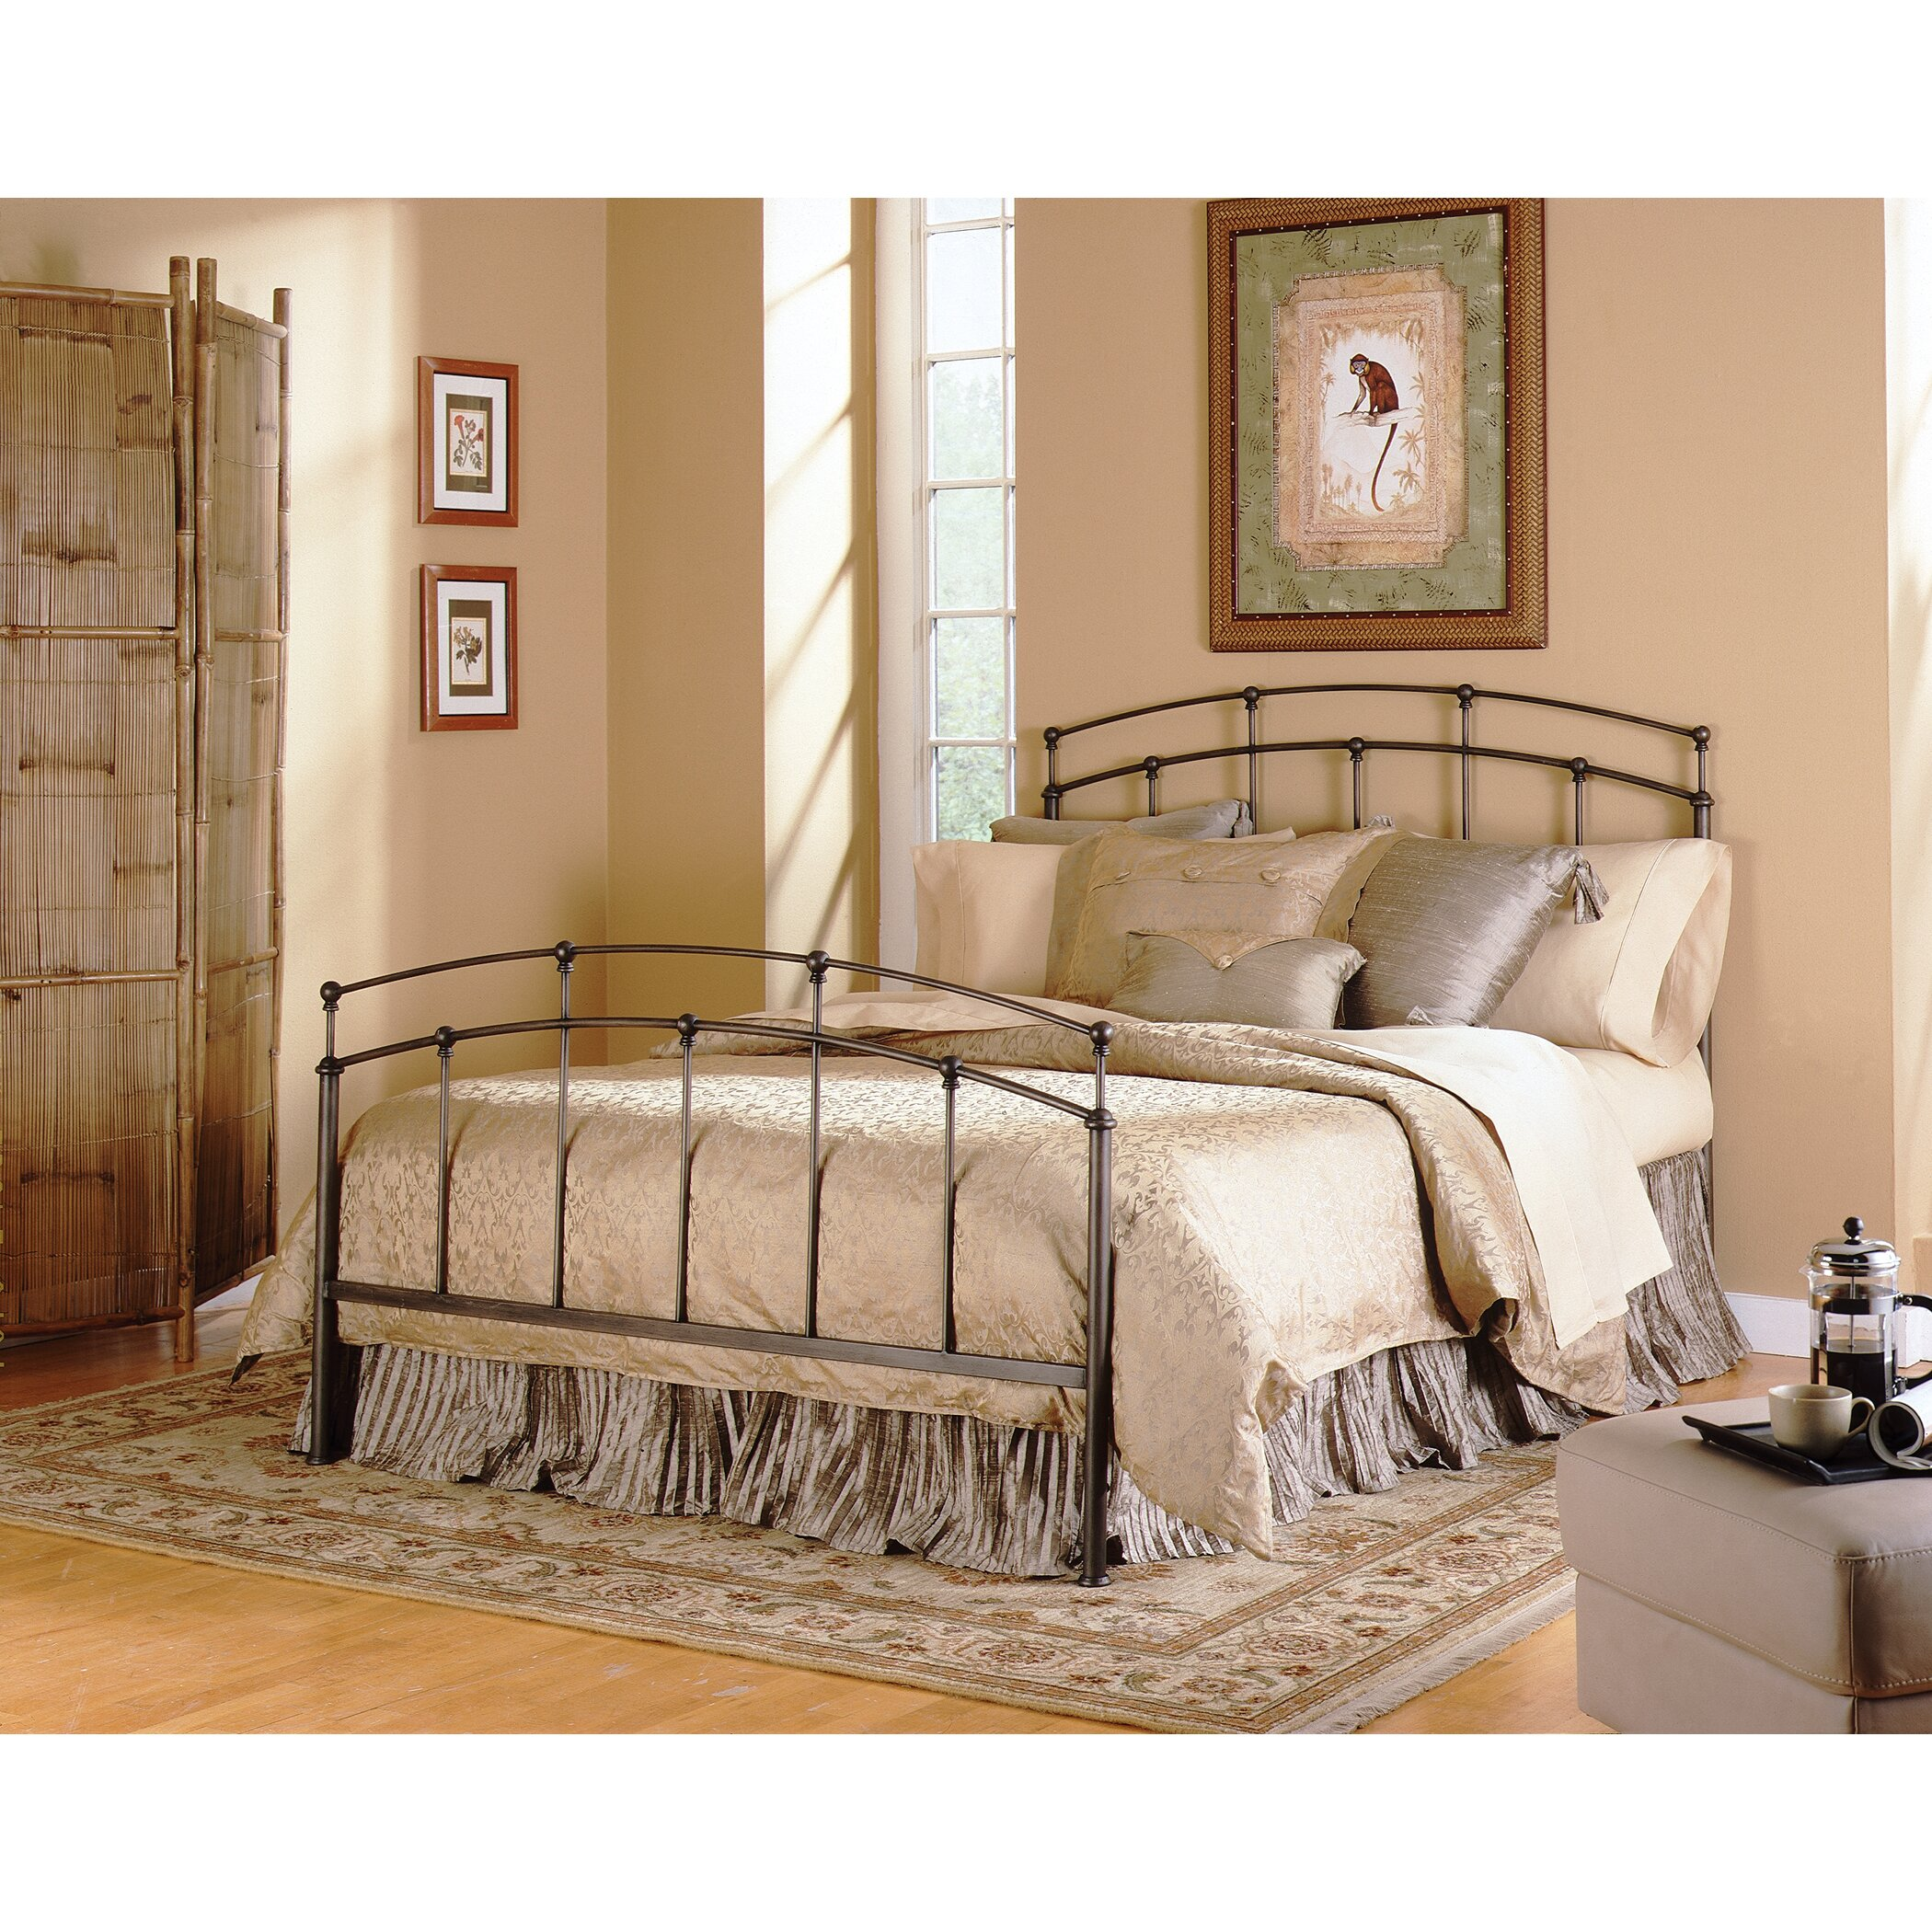 Fashion bed group fenton metal headboard reviews wayfair for Bedroom ideas with metal beds